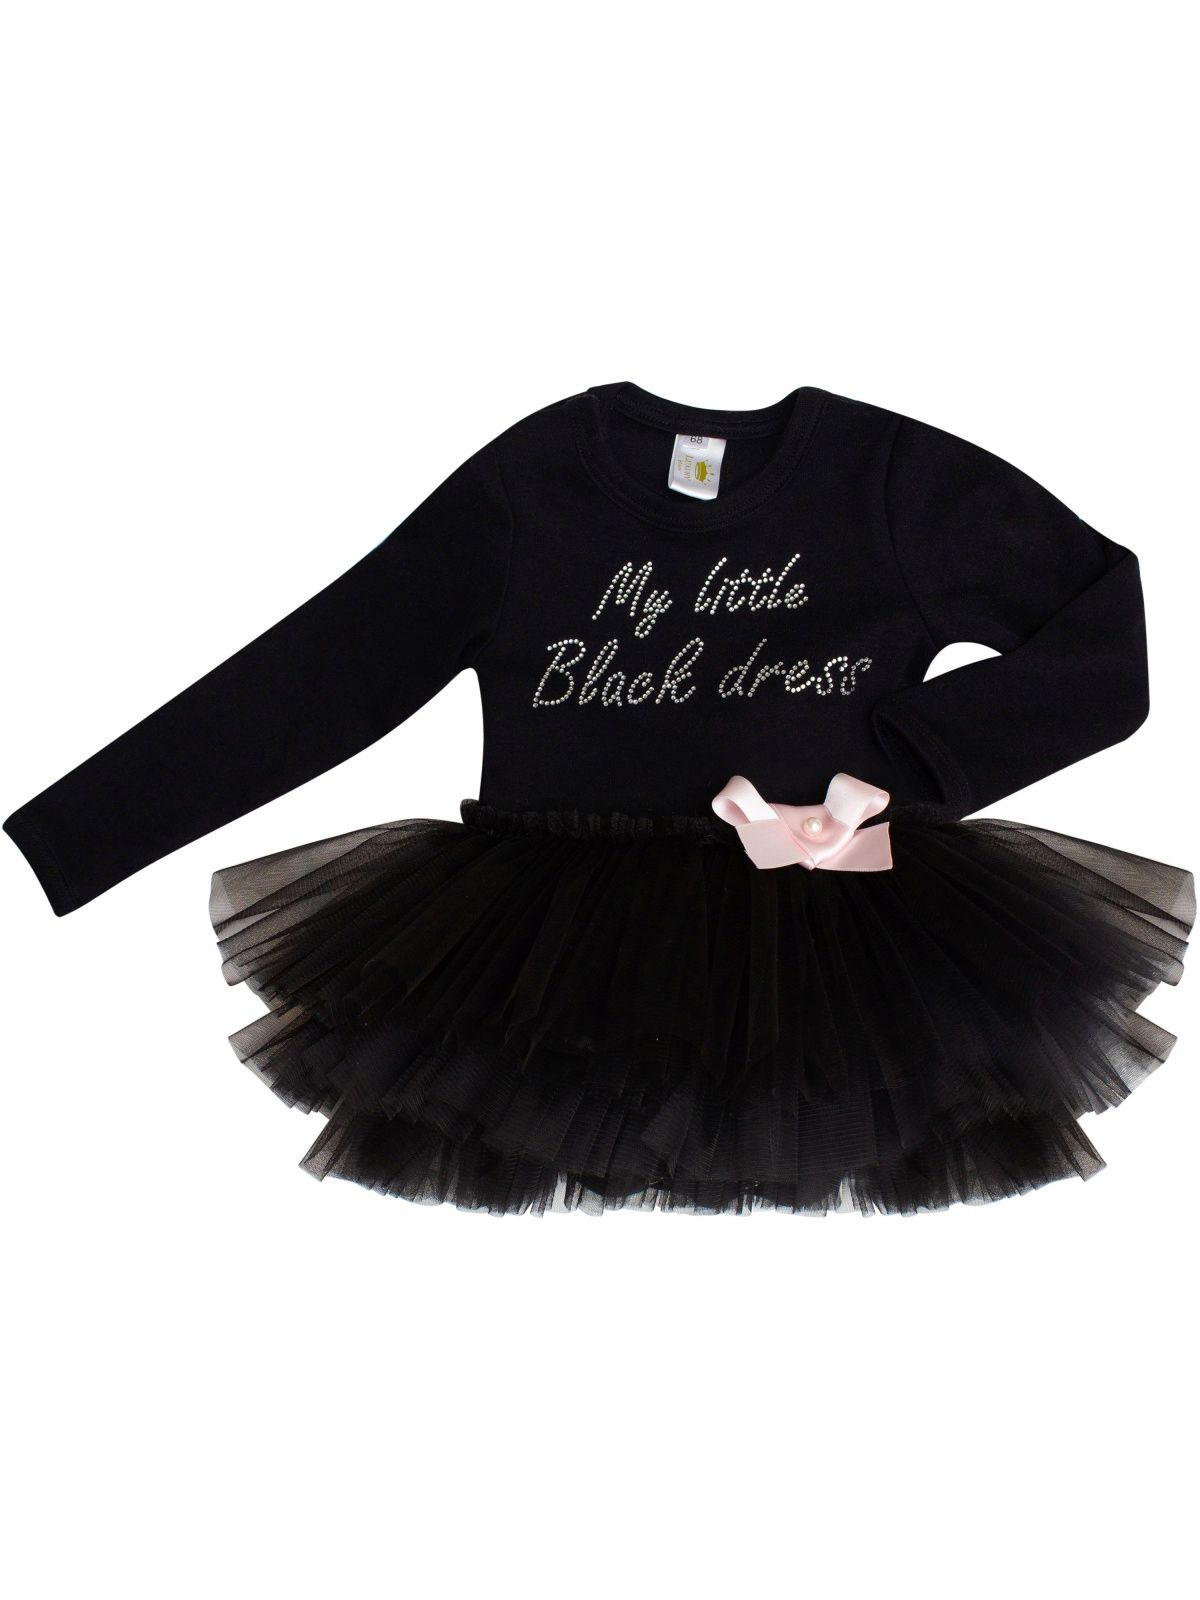 "Боди ""My little black dress"" с чёрной юбочкой, LUXURY BABY"